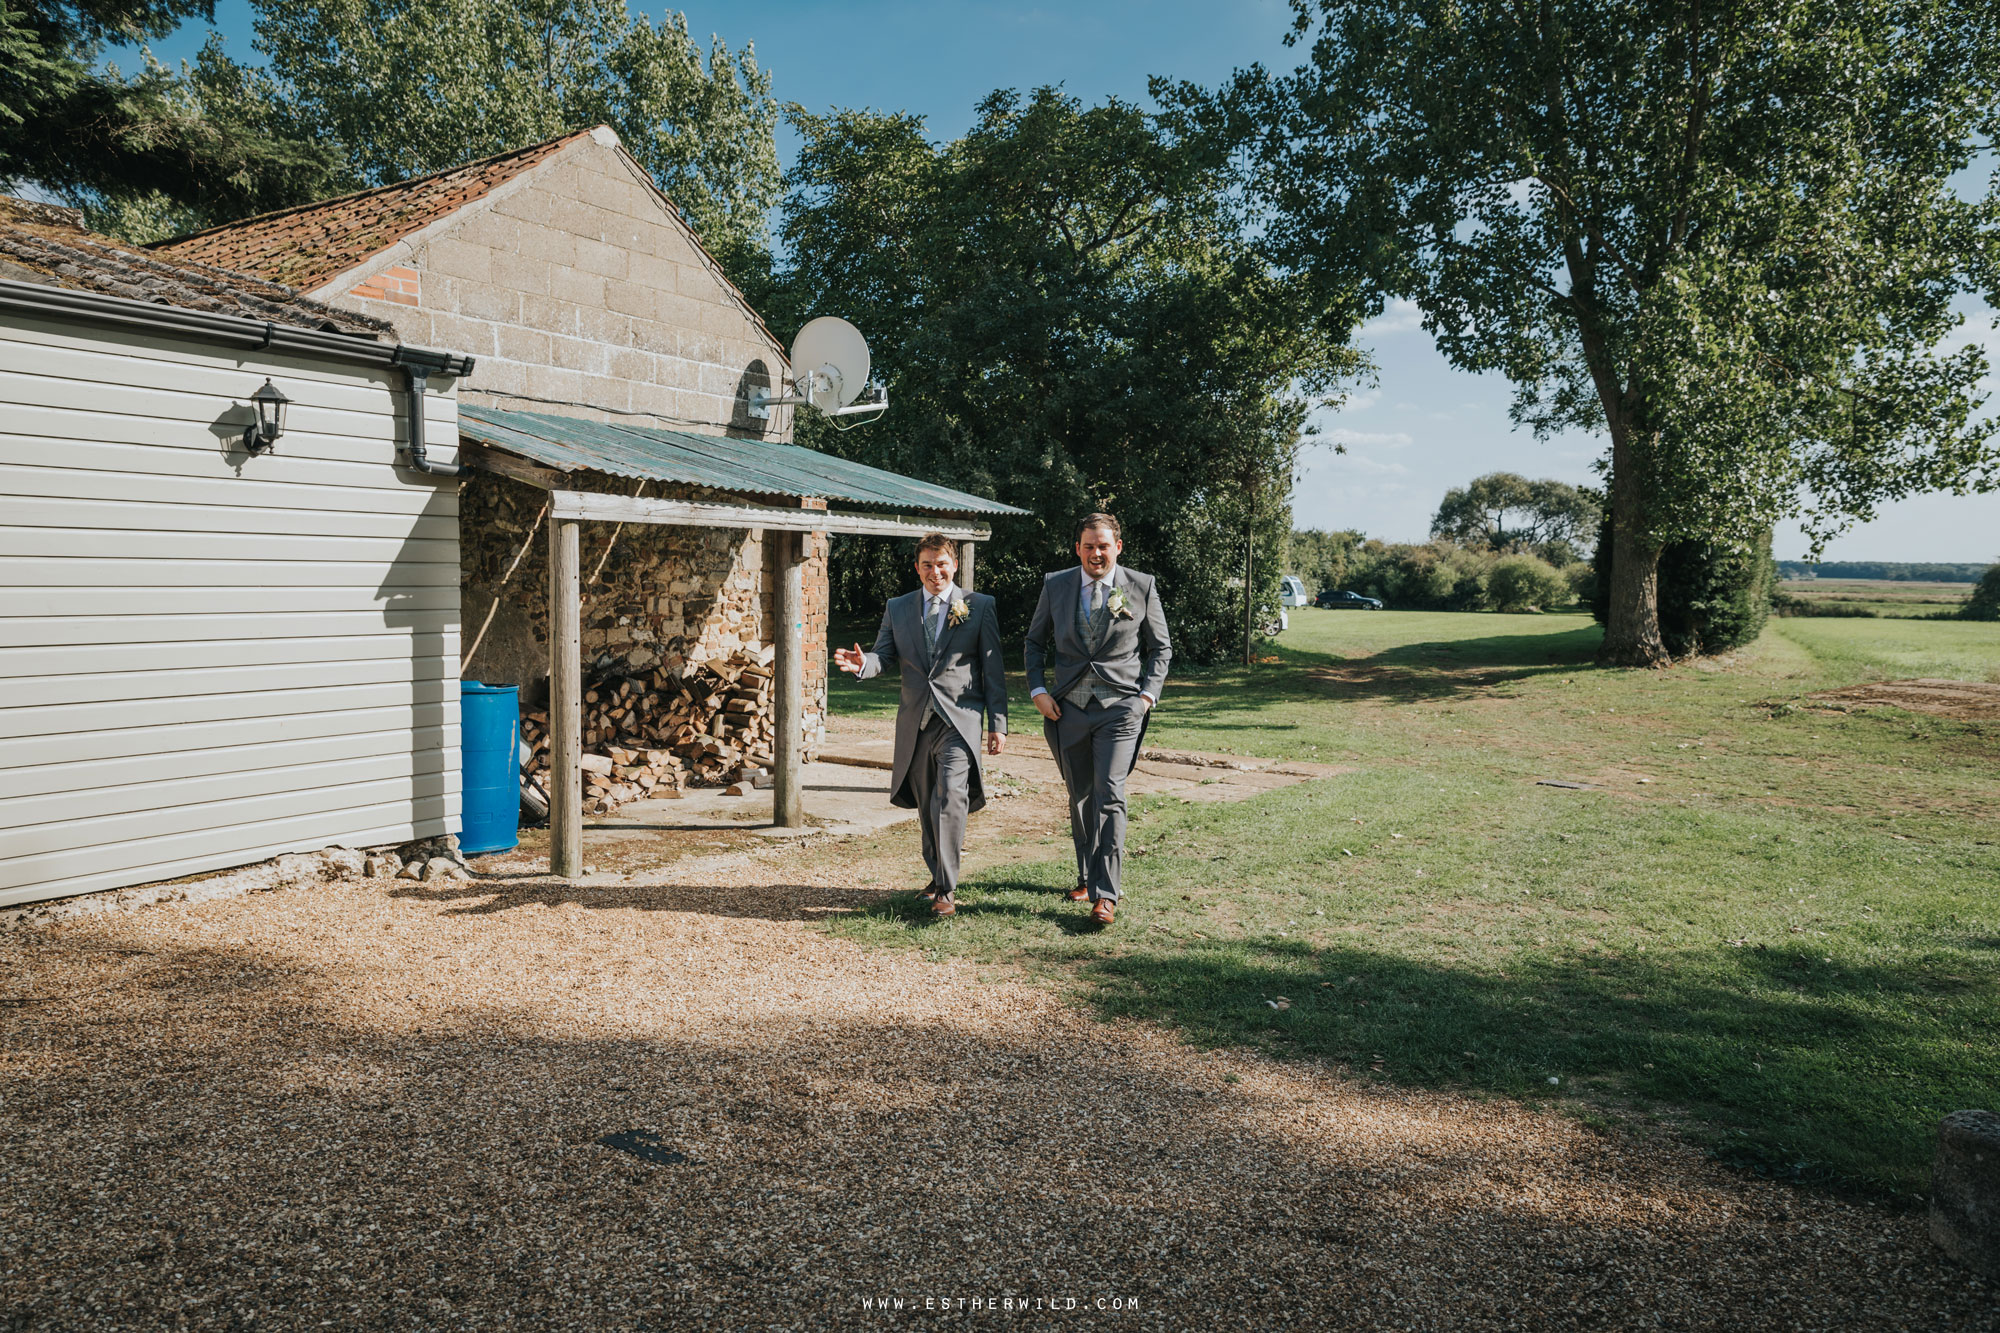 Pentney_Abbey_Wedding_Kings_Lynn_Norfolk_Esther_Wild_Wedding_Photography_IMG_0408.jpg